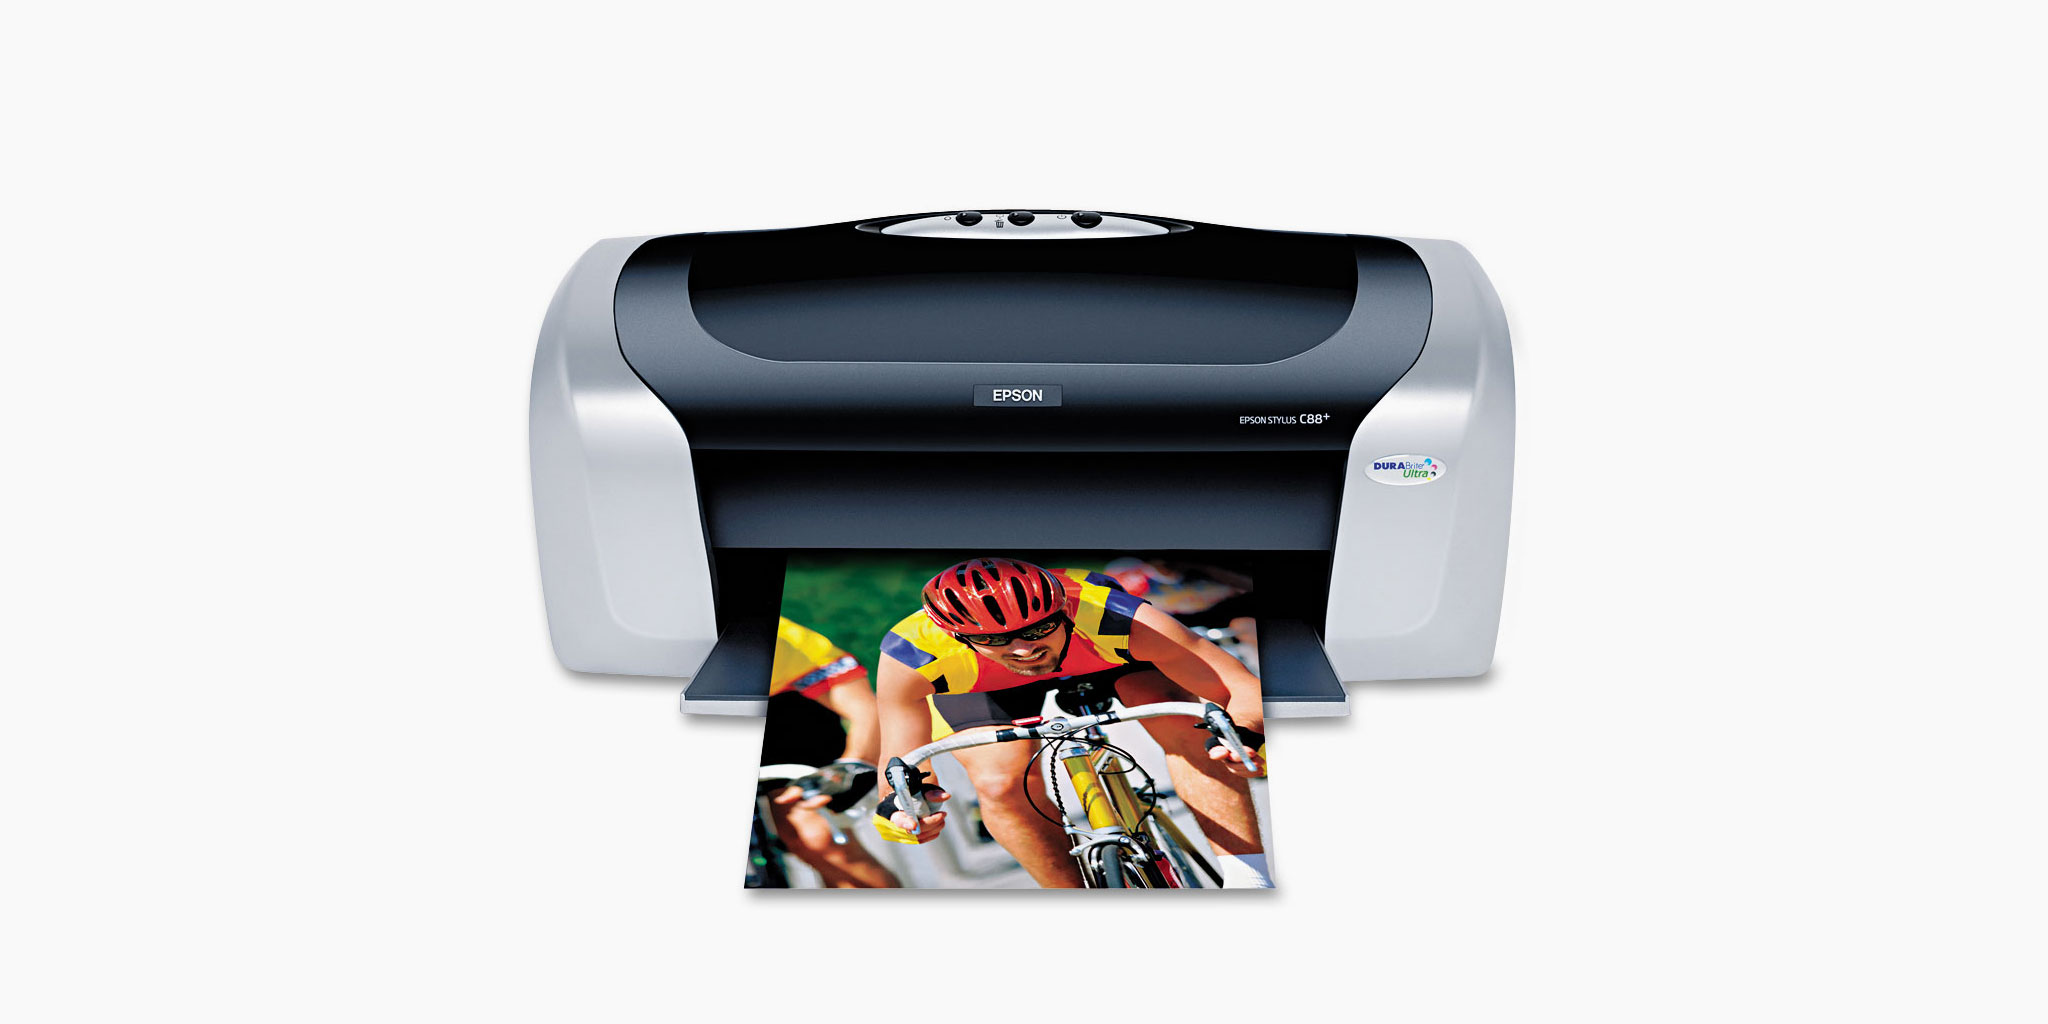 Best printer for heat transfer